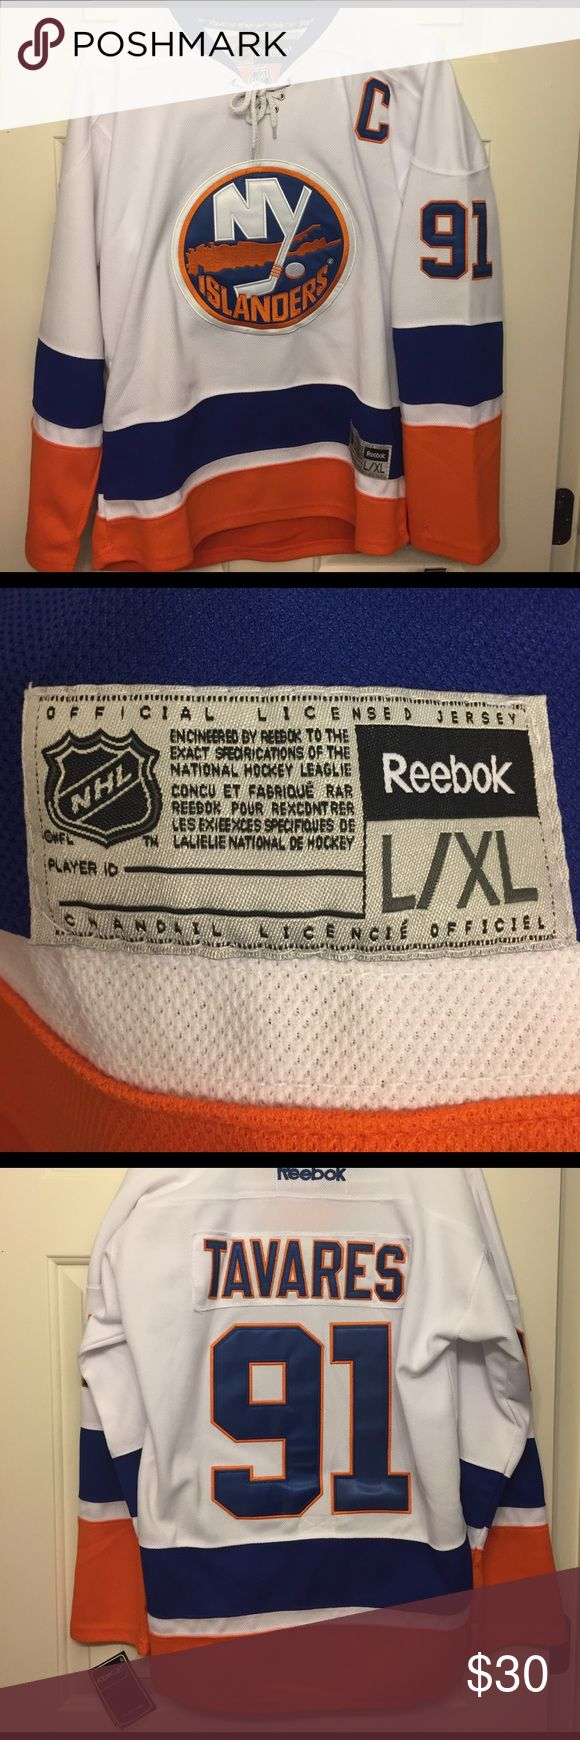 Youth L/XL John Tavares Hockey Jersey White New York Islanders John Tavares YOUTH L / XL NHL Hockey Jersey. **NEW WITH TAGS** Reebok Accessories